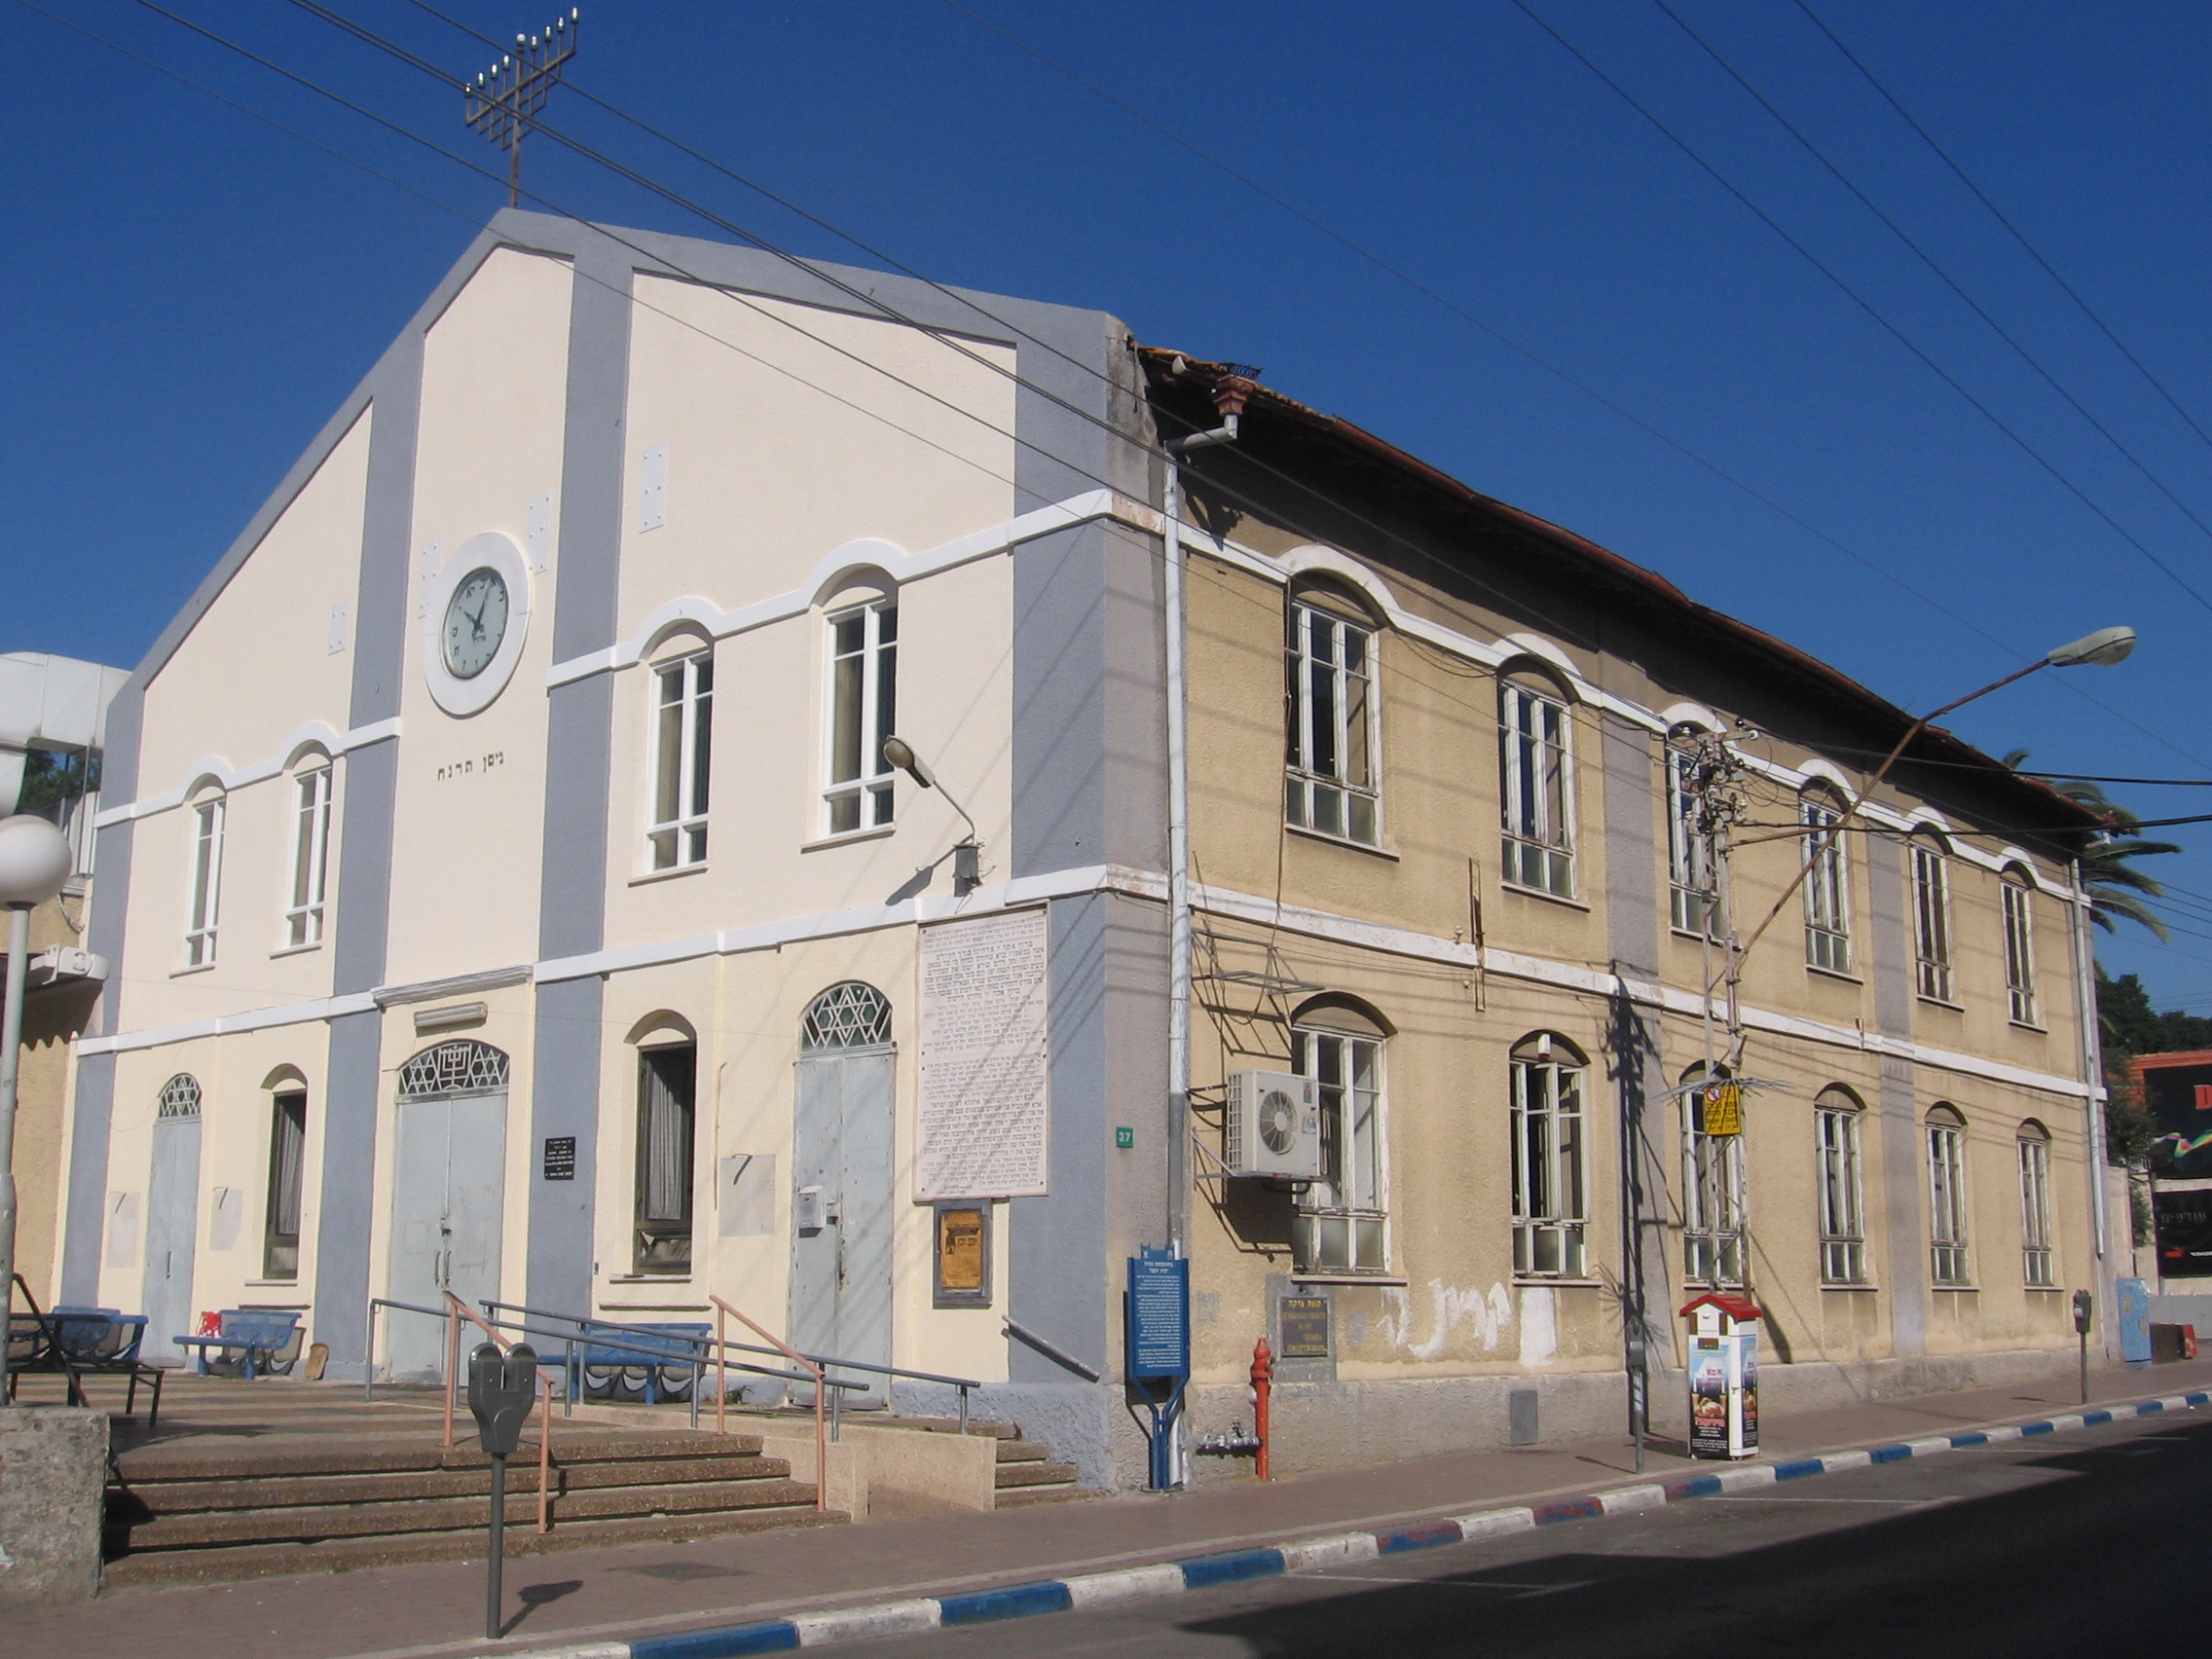 petah tikva great synagogue.jpg